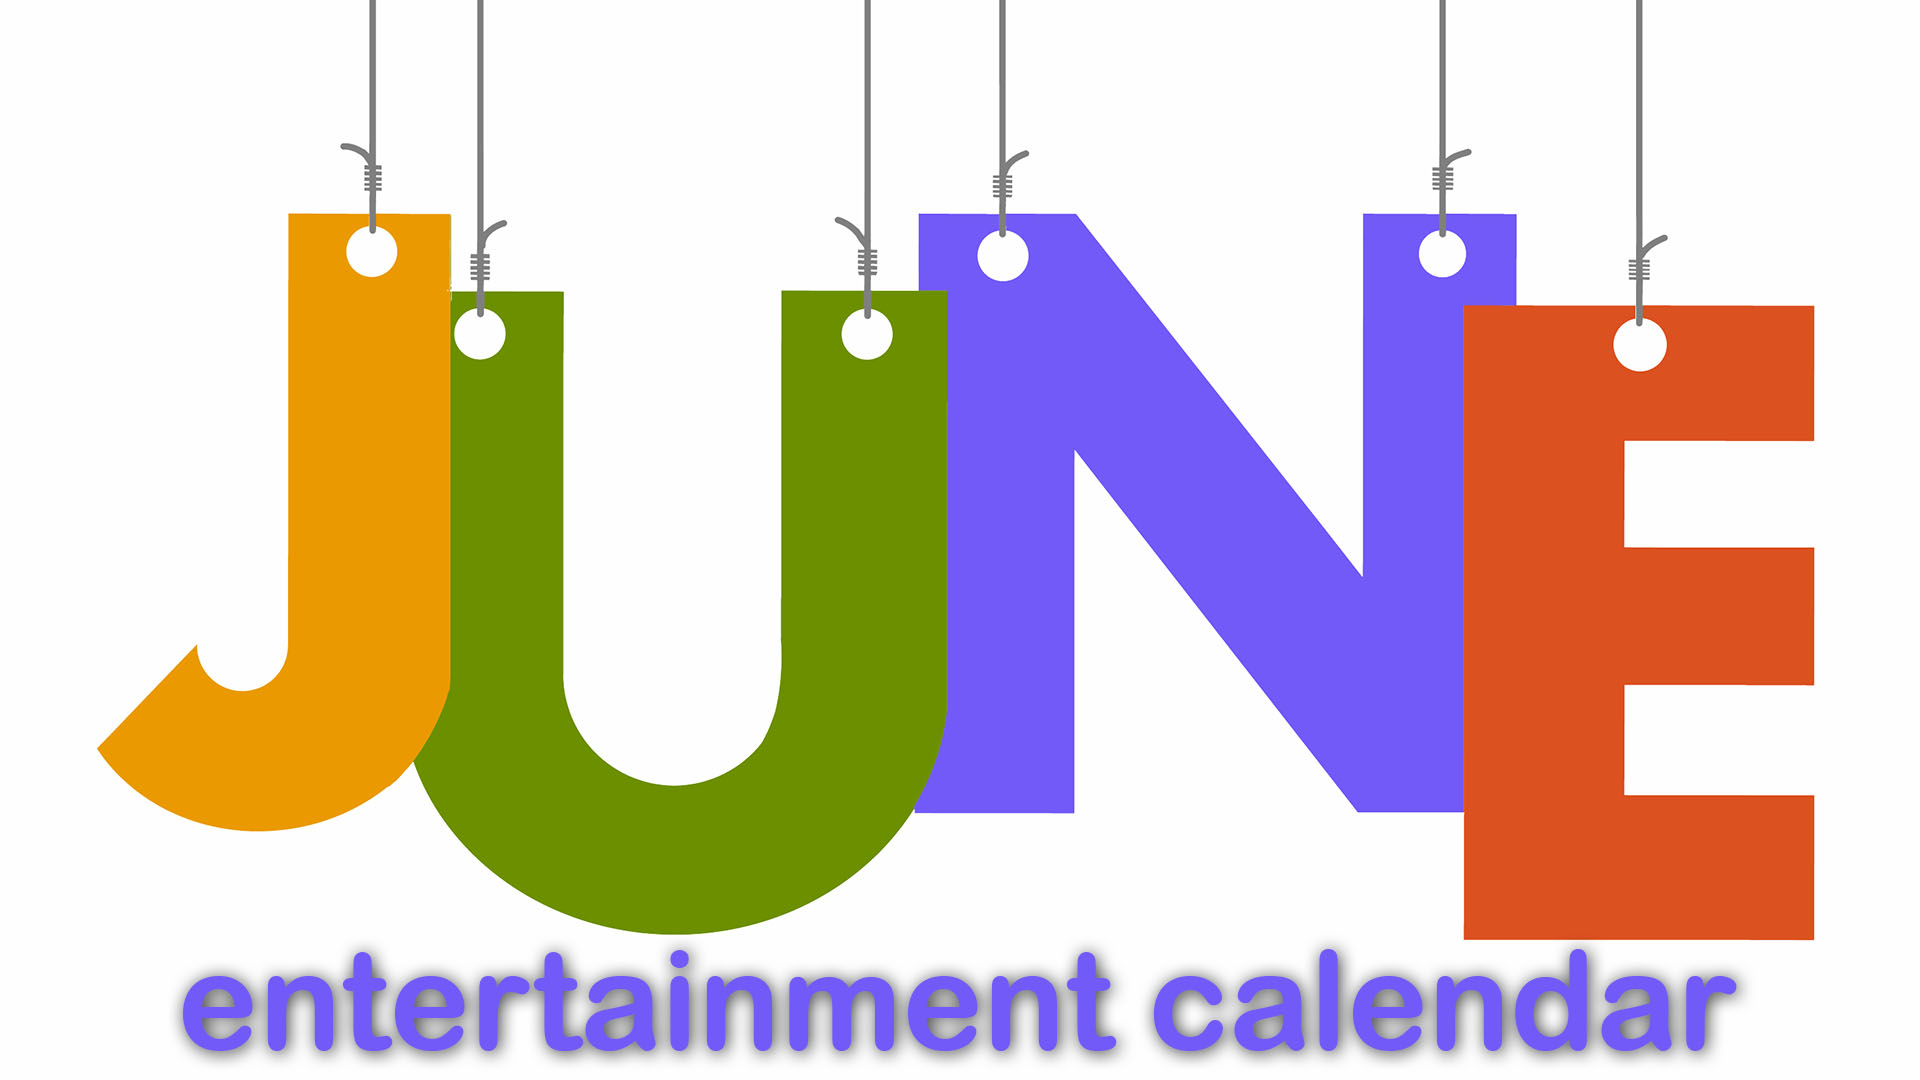 June entertainment calendar: Outdoor concerts, Russ, The Reunion Beatles, 'Texas,' Coors Ranch Rodeo, Pridefest, more